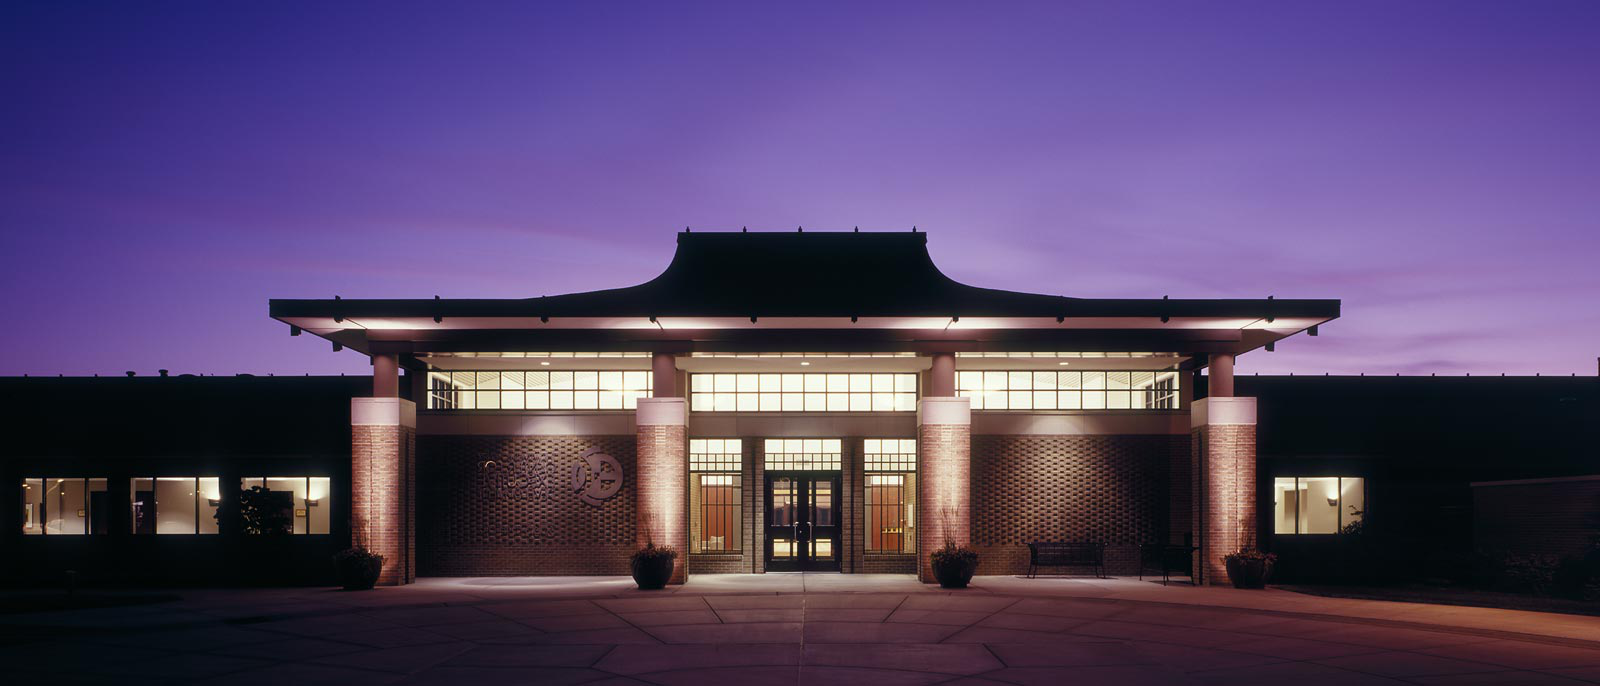 Photo of the front entrance to the James B. 亨利中心的行政发展 at dusk.